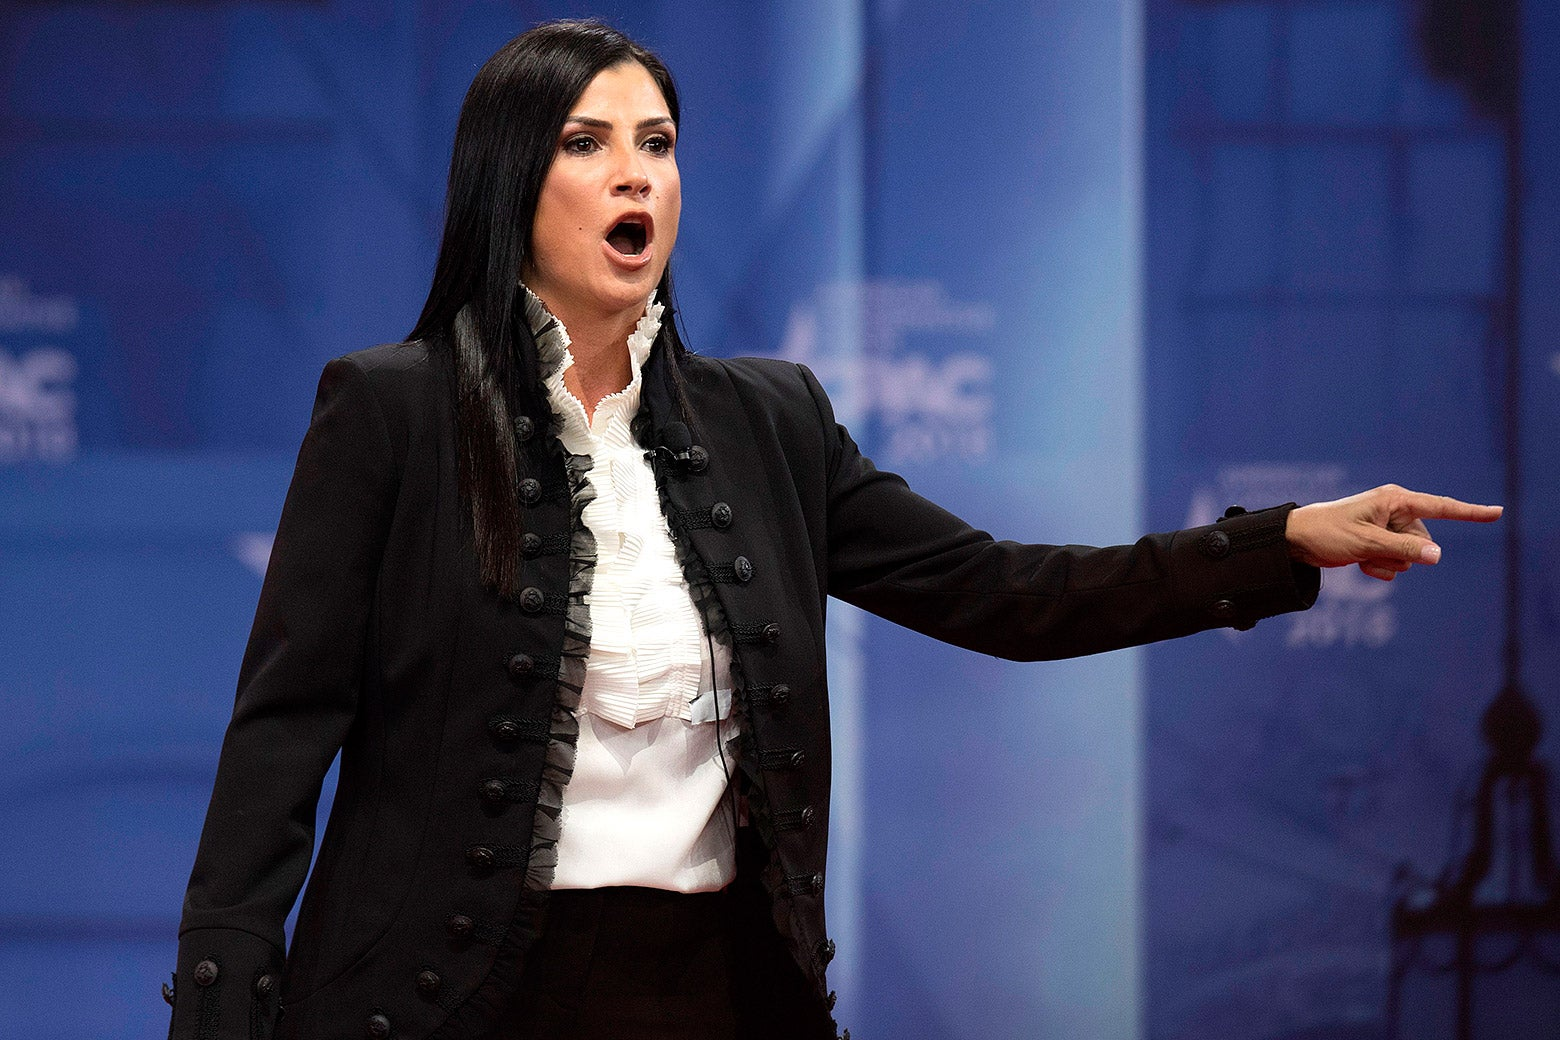 Dana Loesch speaks during the 2018 Conservative Political Action Conference at National Harbor in Oxon Hill, Maryland on Feb. 22.